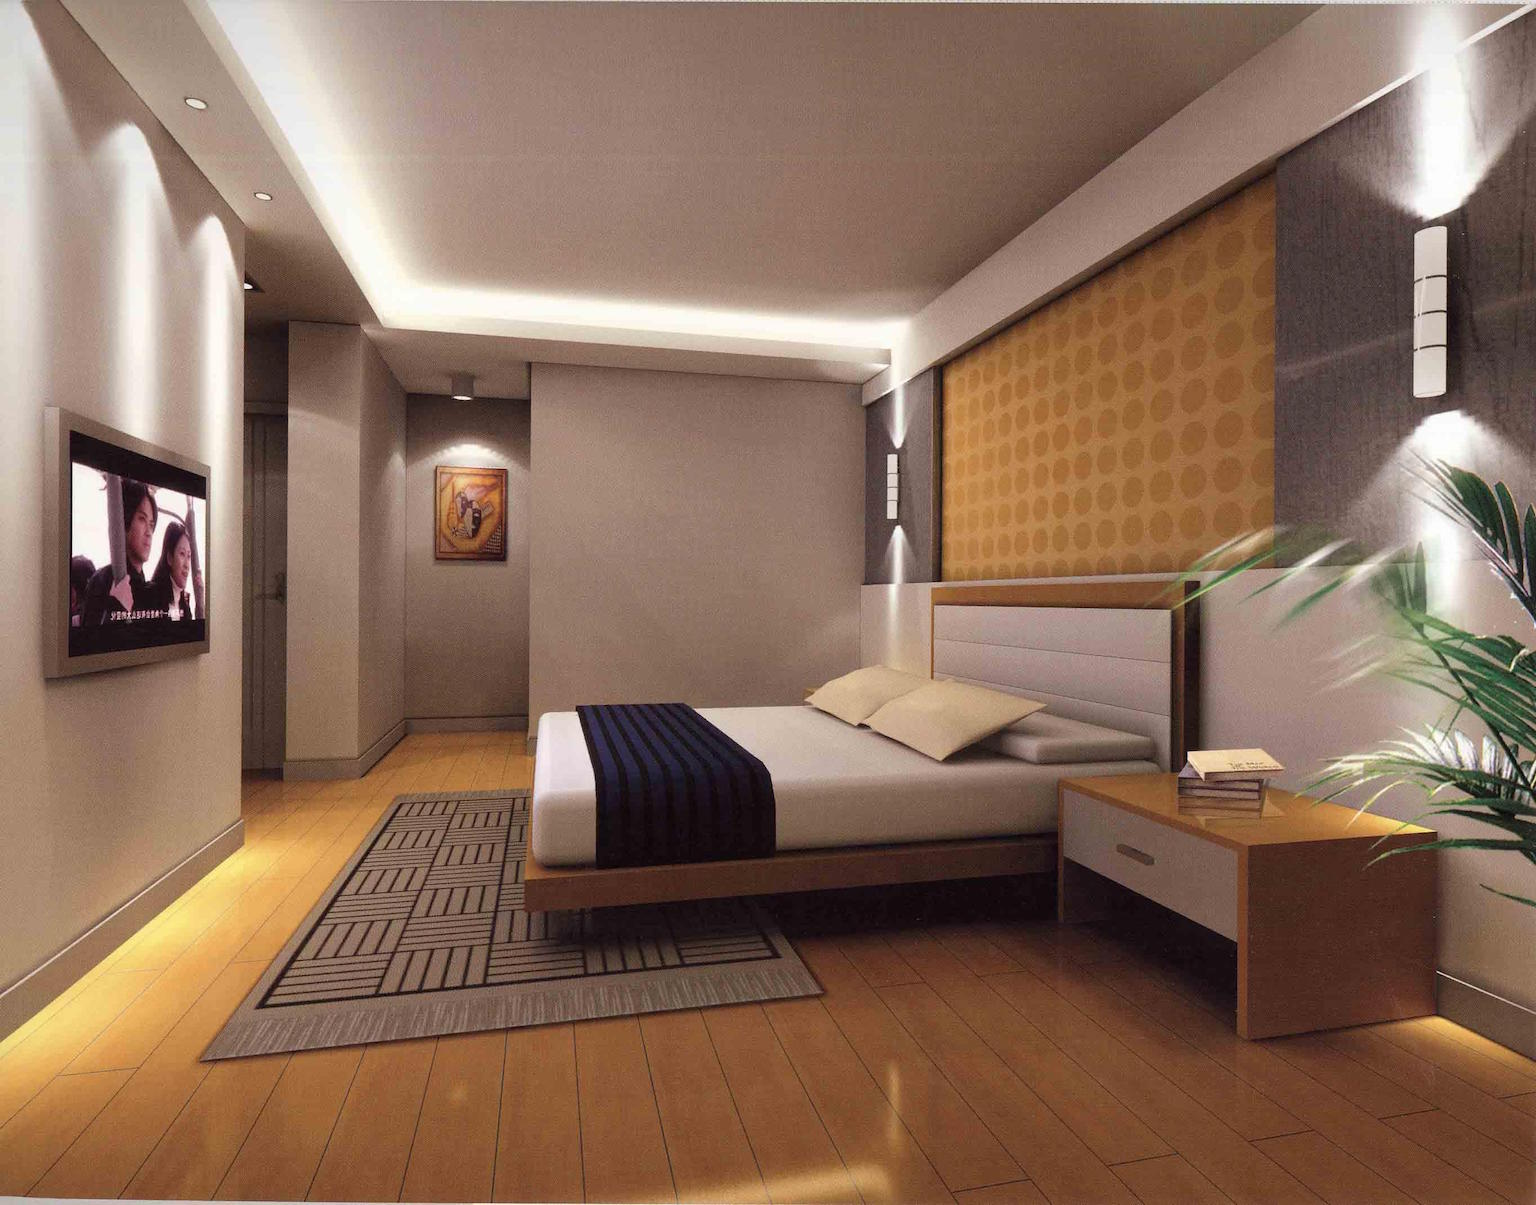 Interior design styles master bedroom for Interior design styles